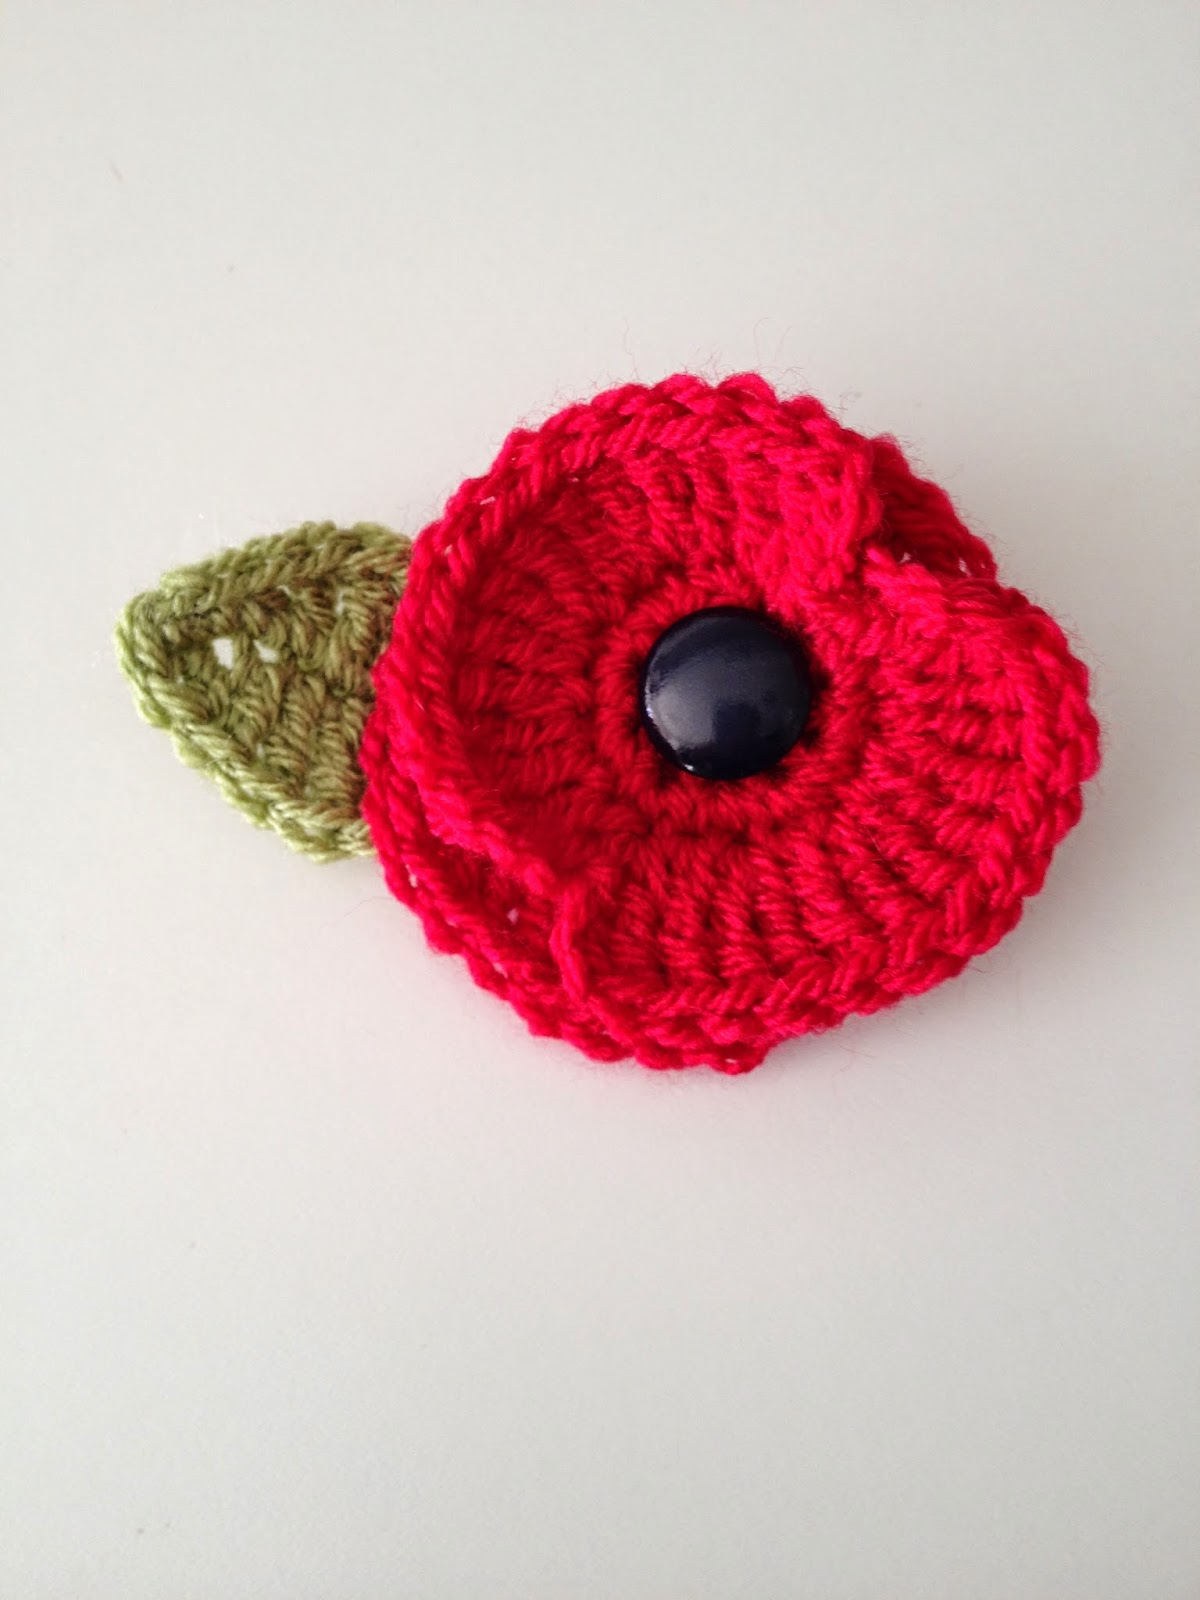 Easy Afghan Knitting Patterns Free : Eirawen: Crochet Poppy